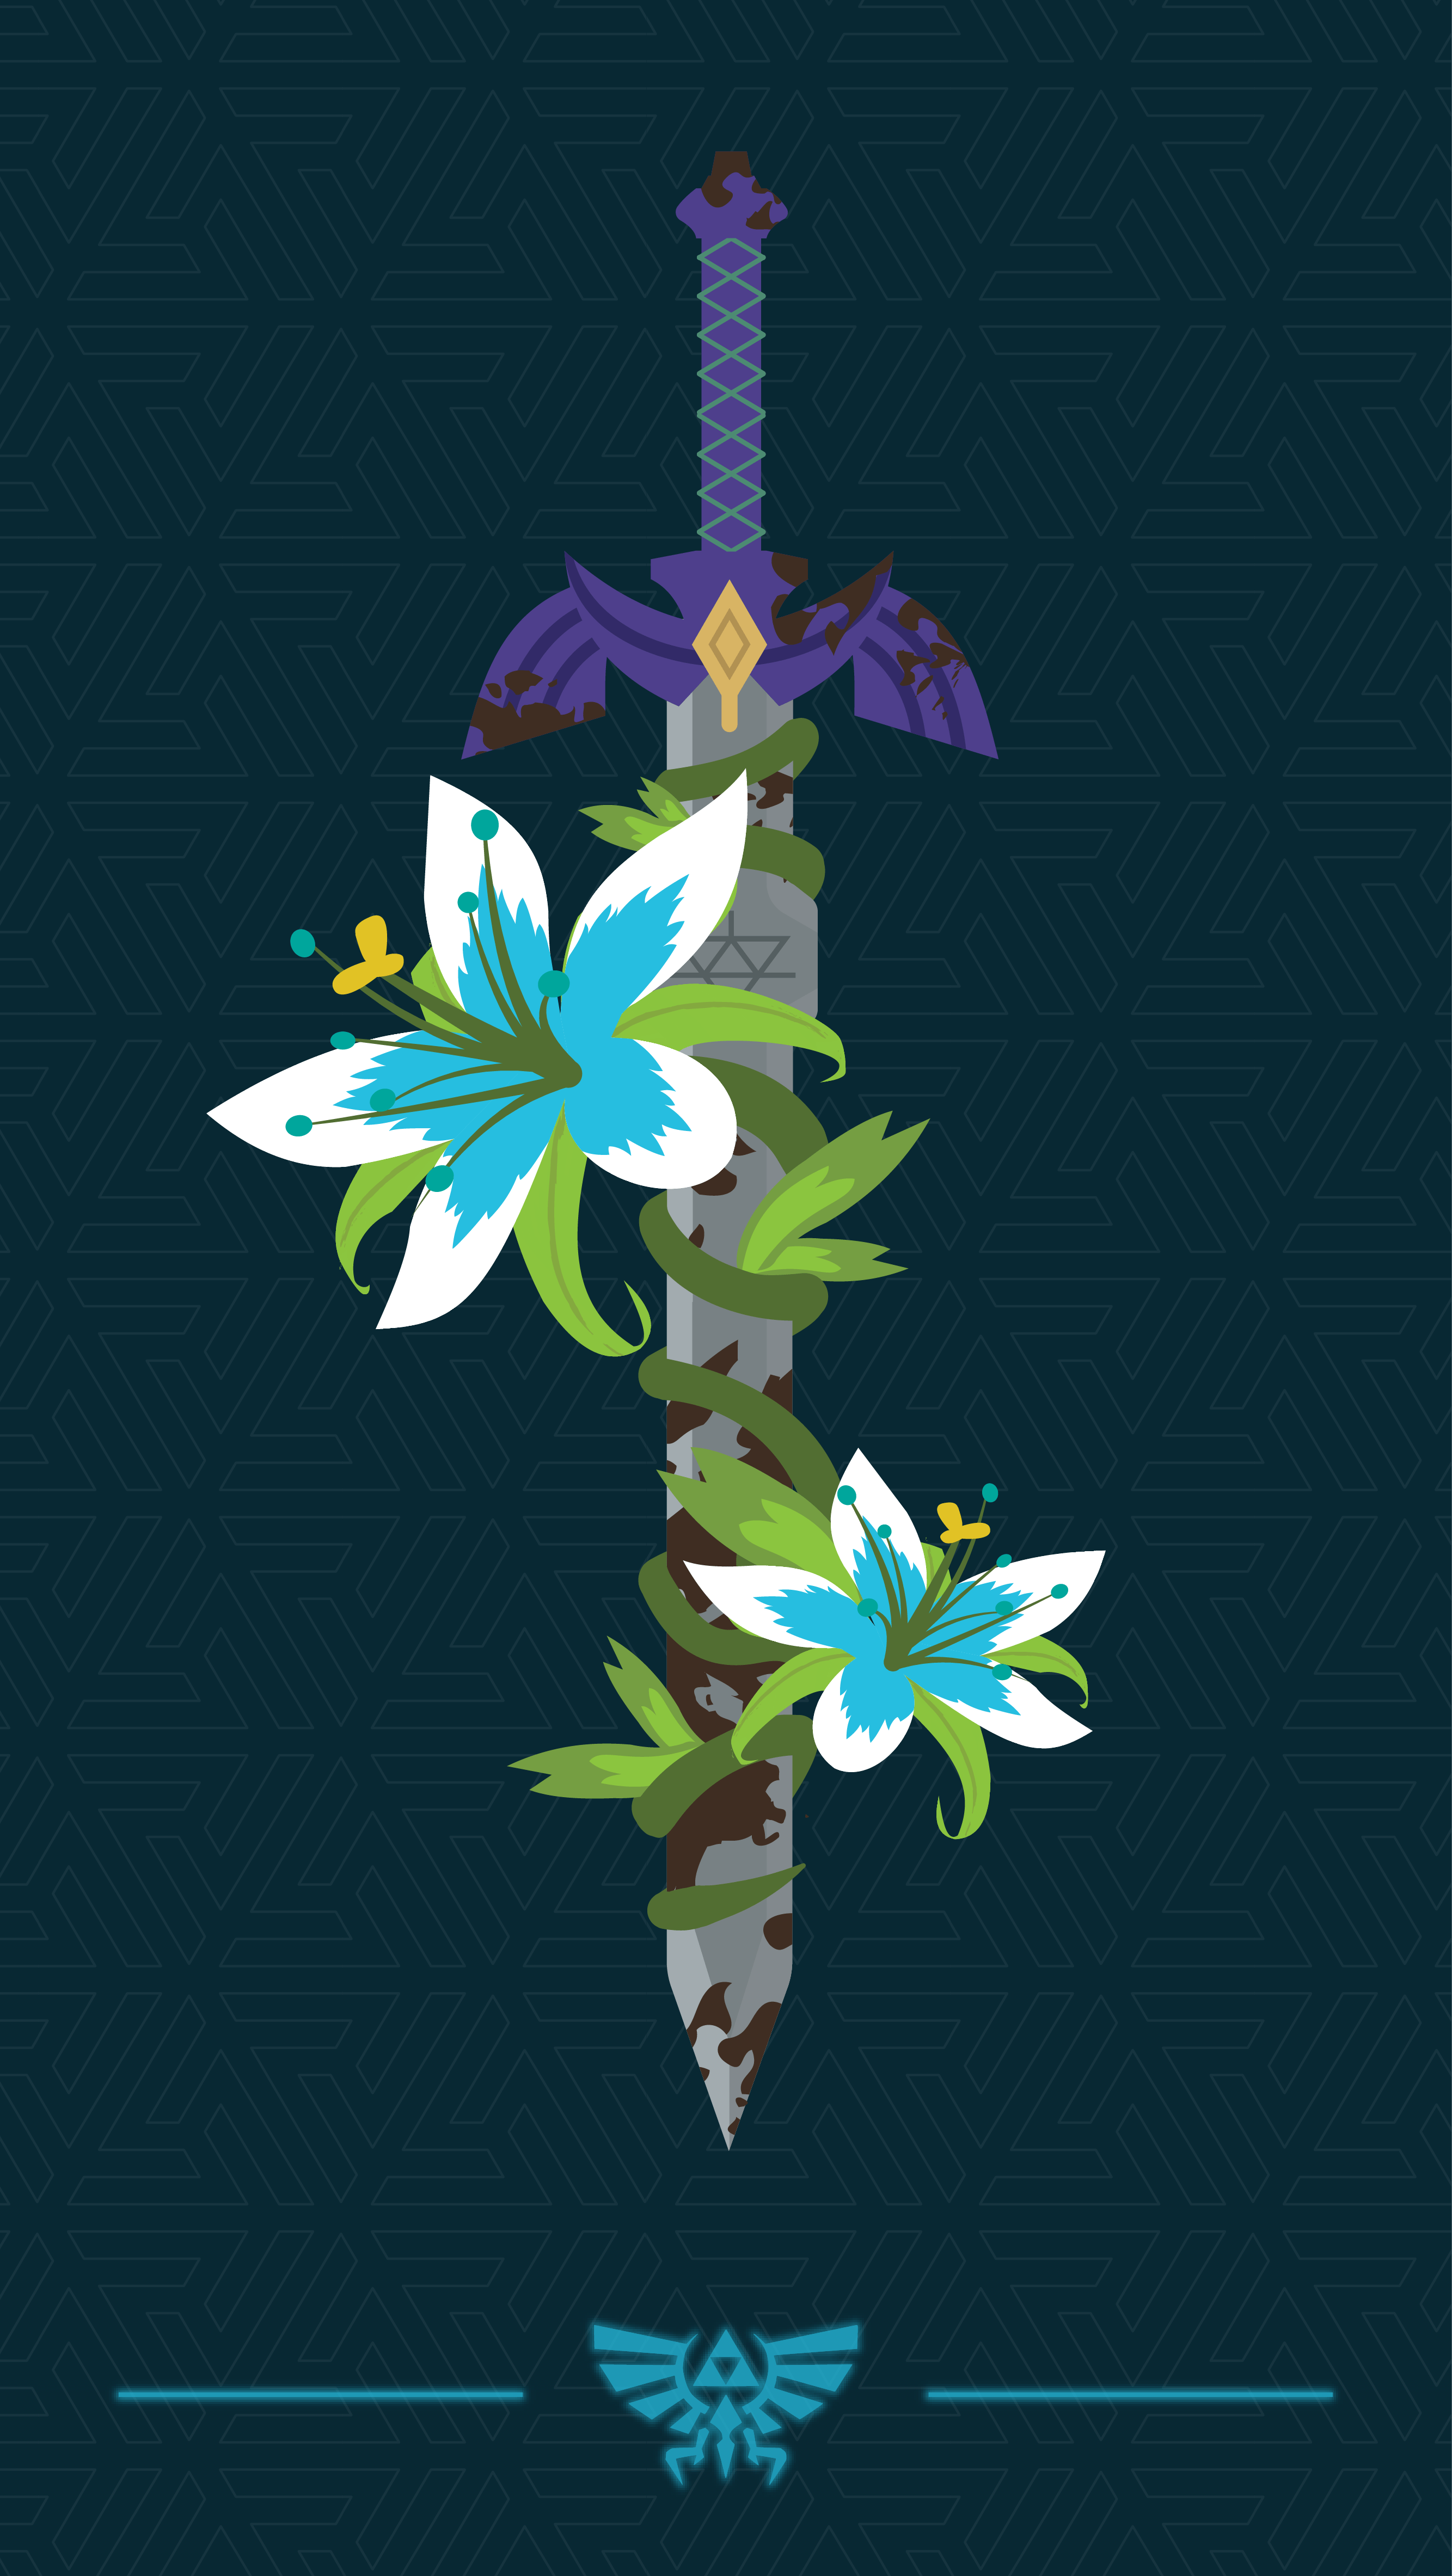 Botw Wallpaper Phone : wallpaper, phone, Poster/phone, Wallpaper, Design, Working, Zelda